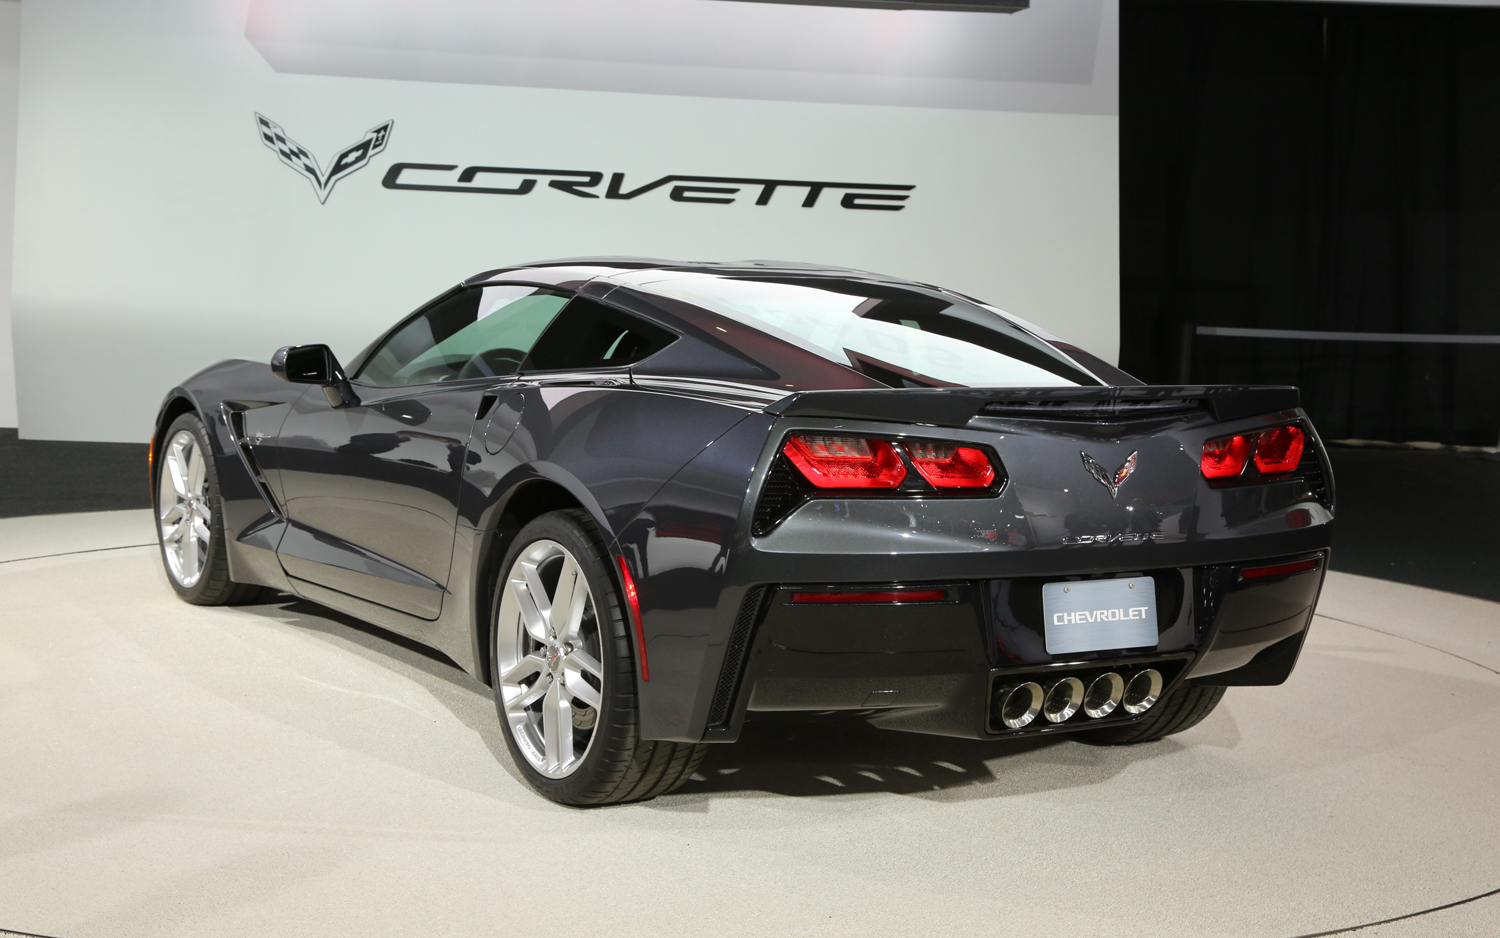 2014 Corvette Stingray Rear